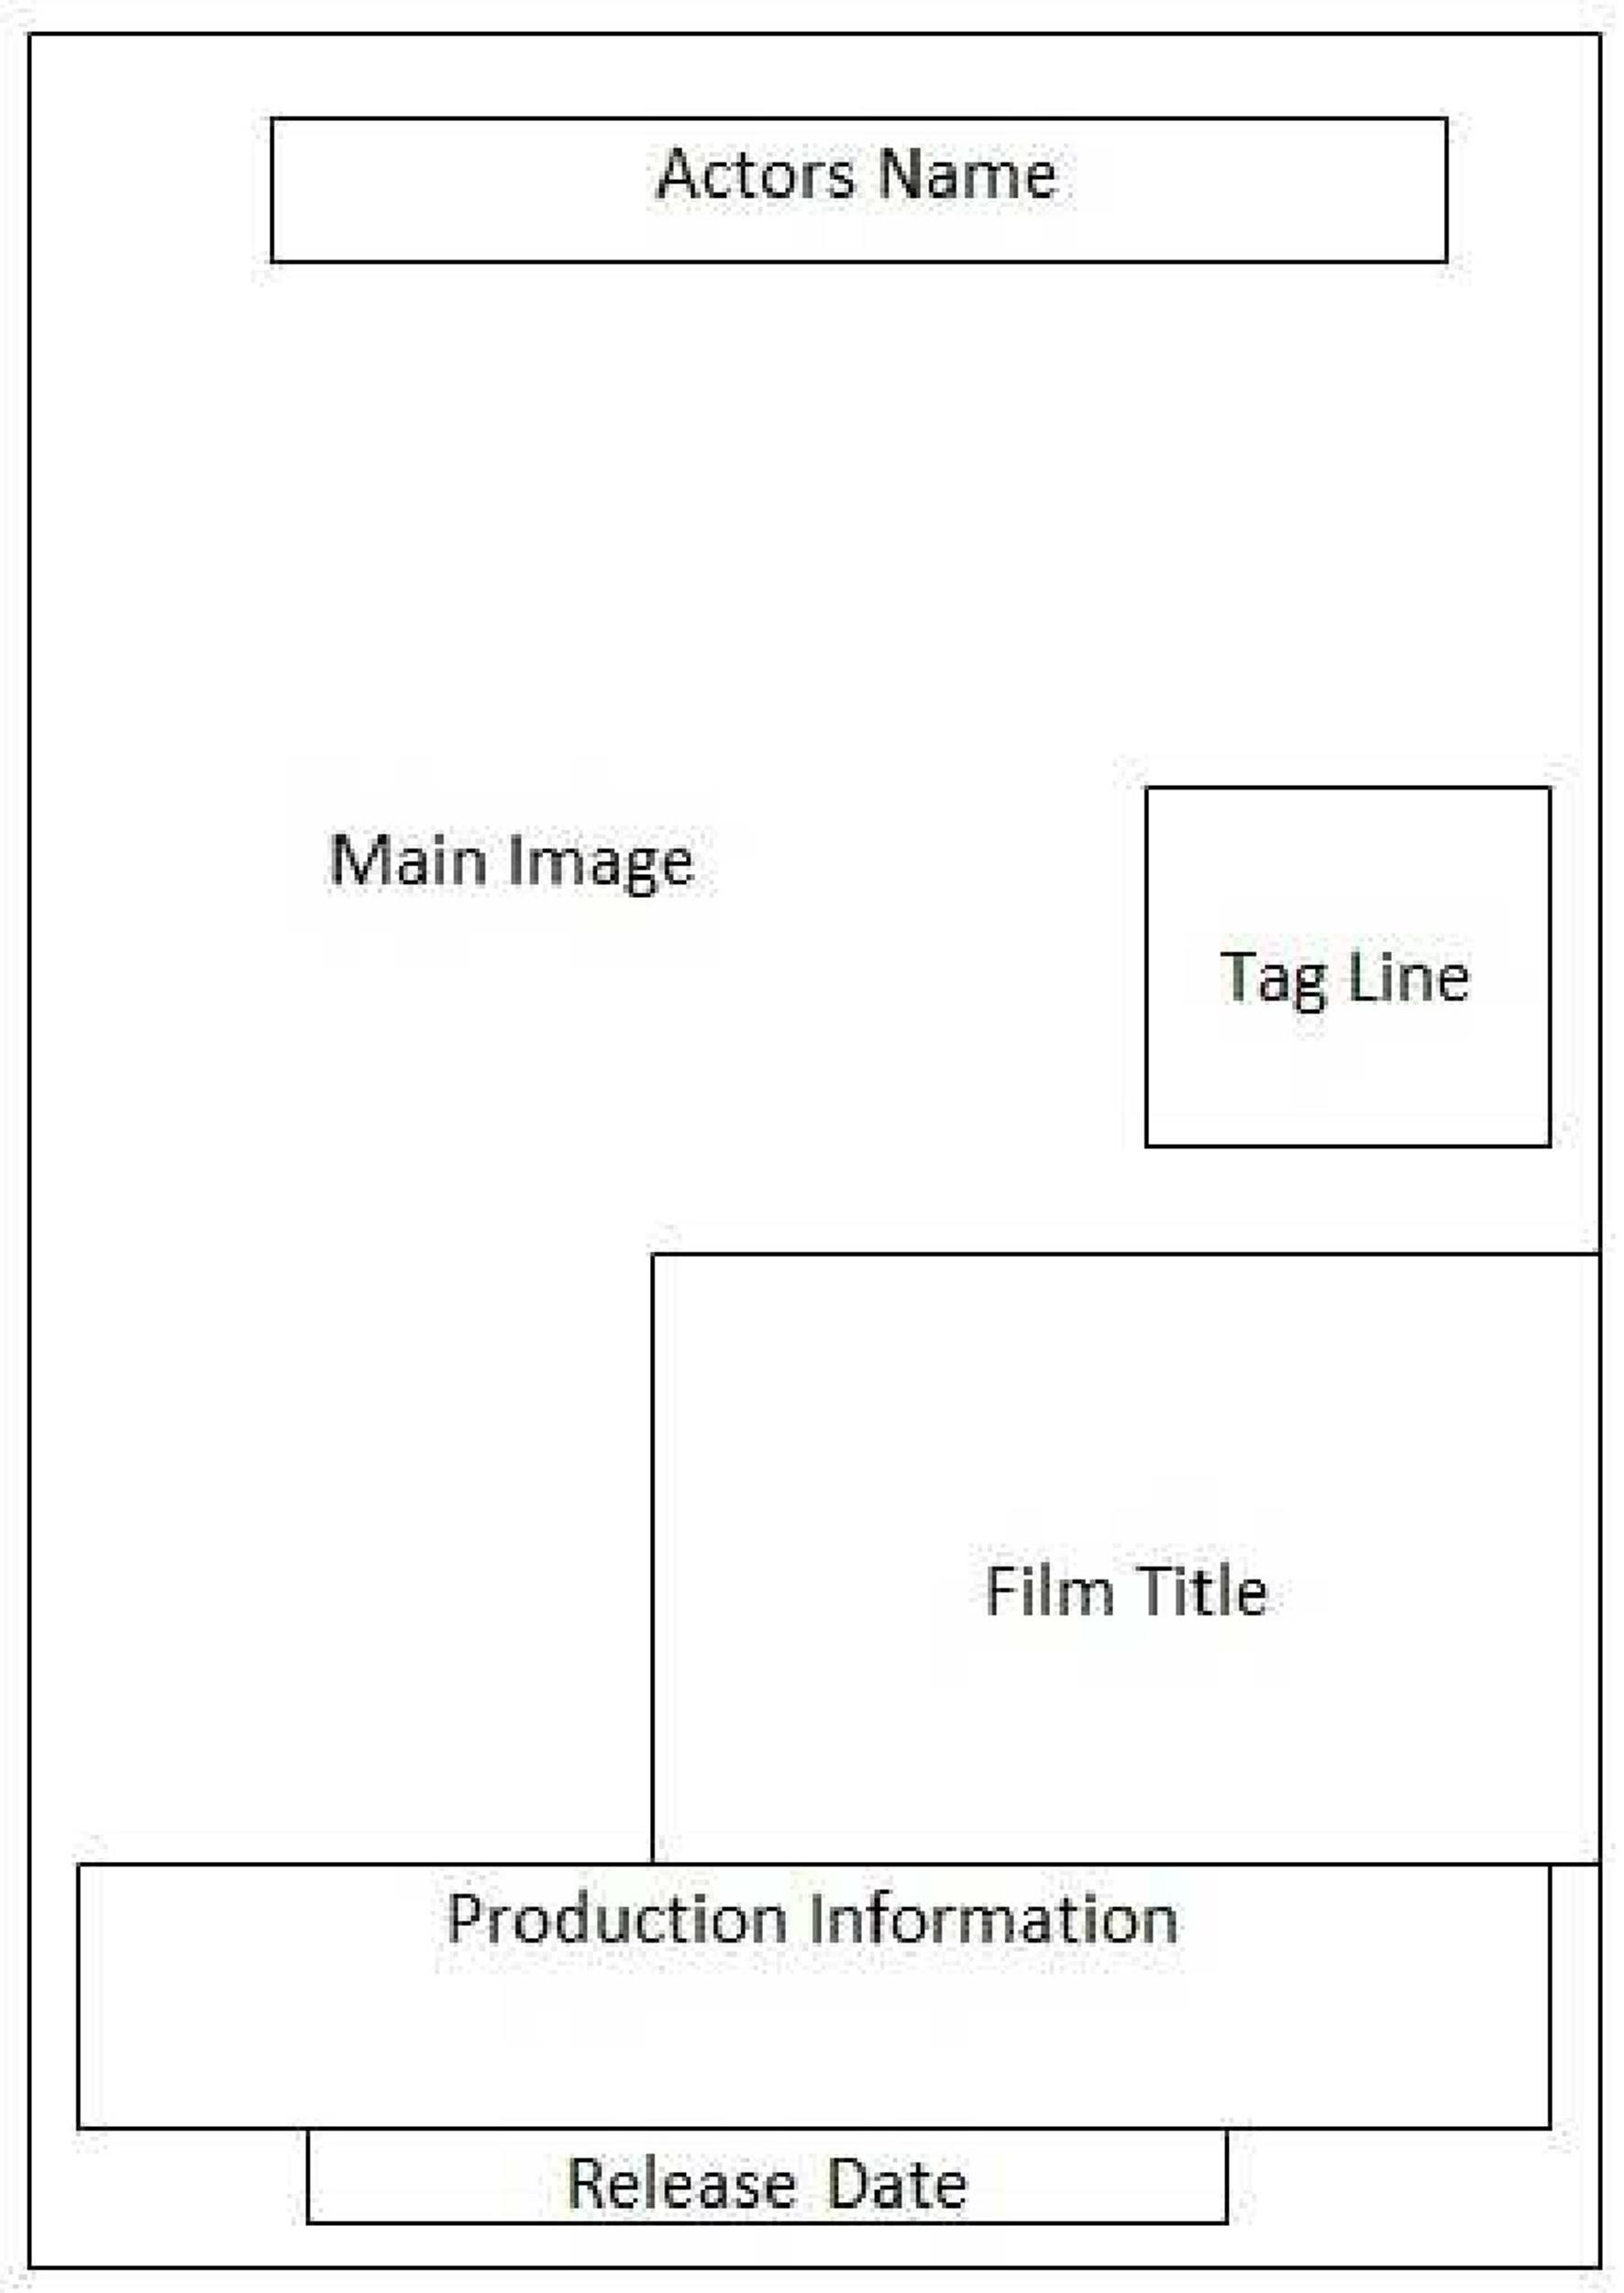 Free movie poster template 18